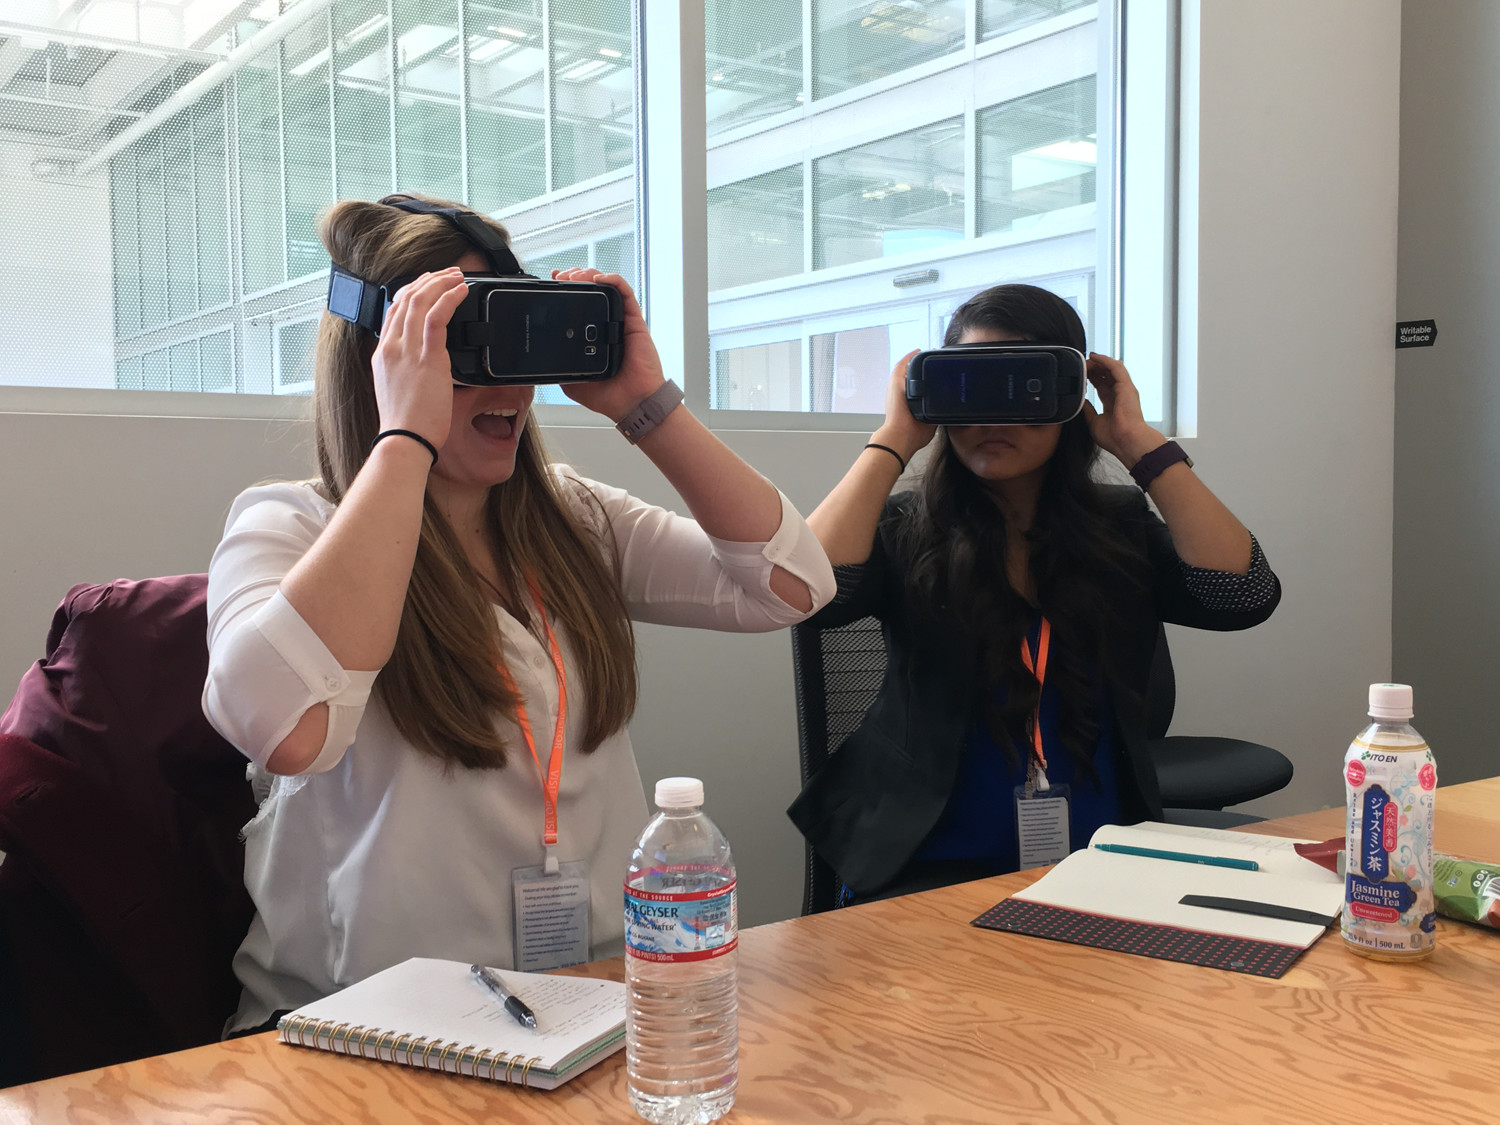 Students test out a new virtual reality app in development at Facebook. (Photo courtesy of Ryan Wright)